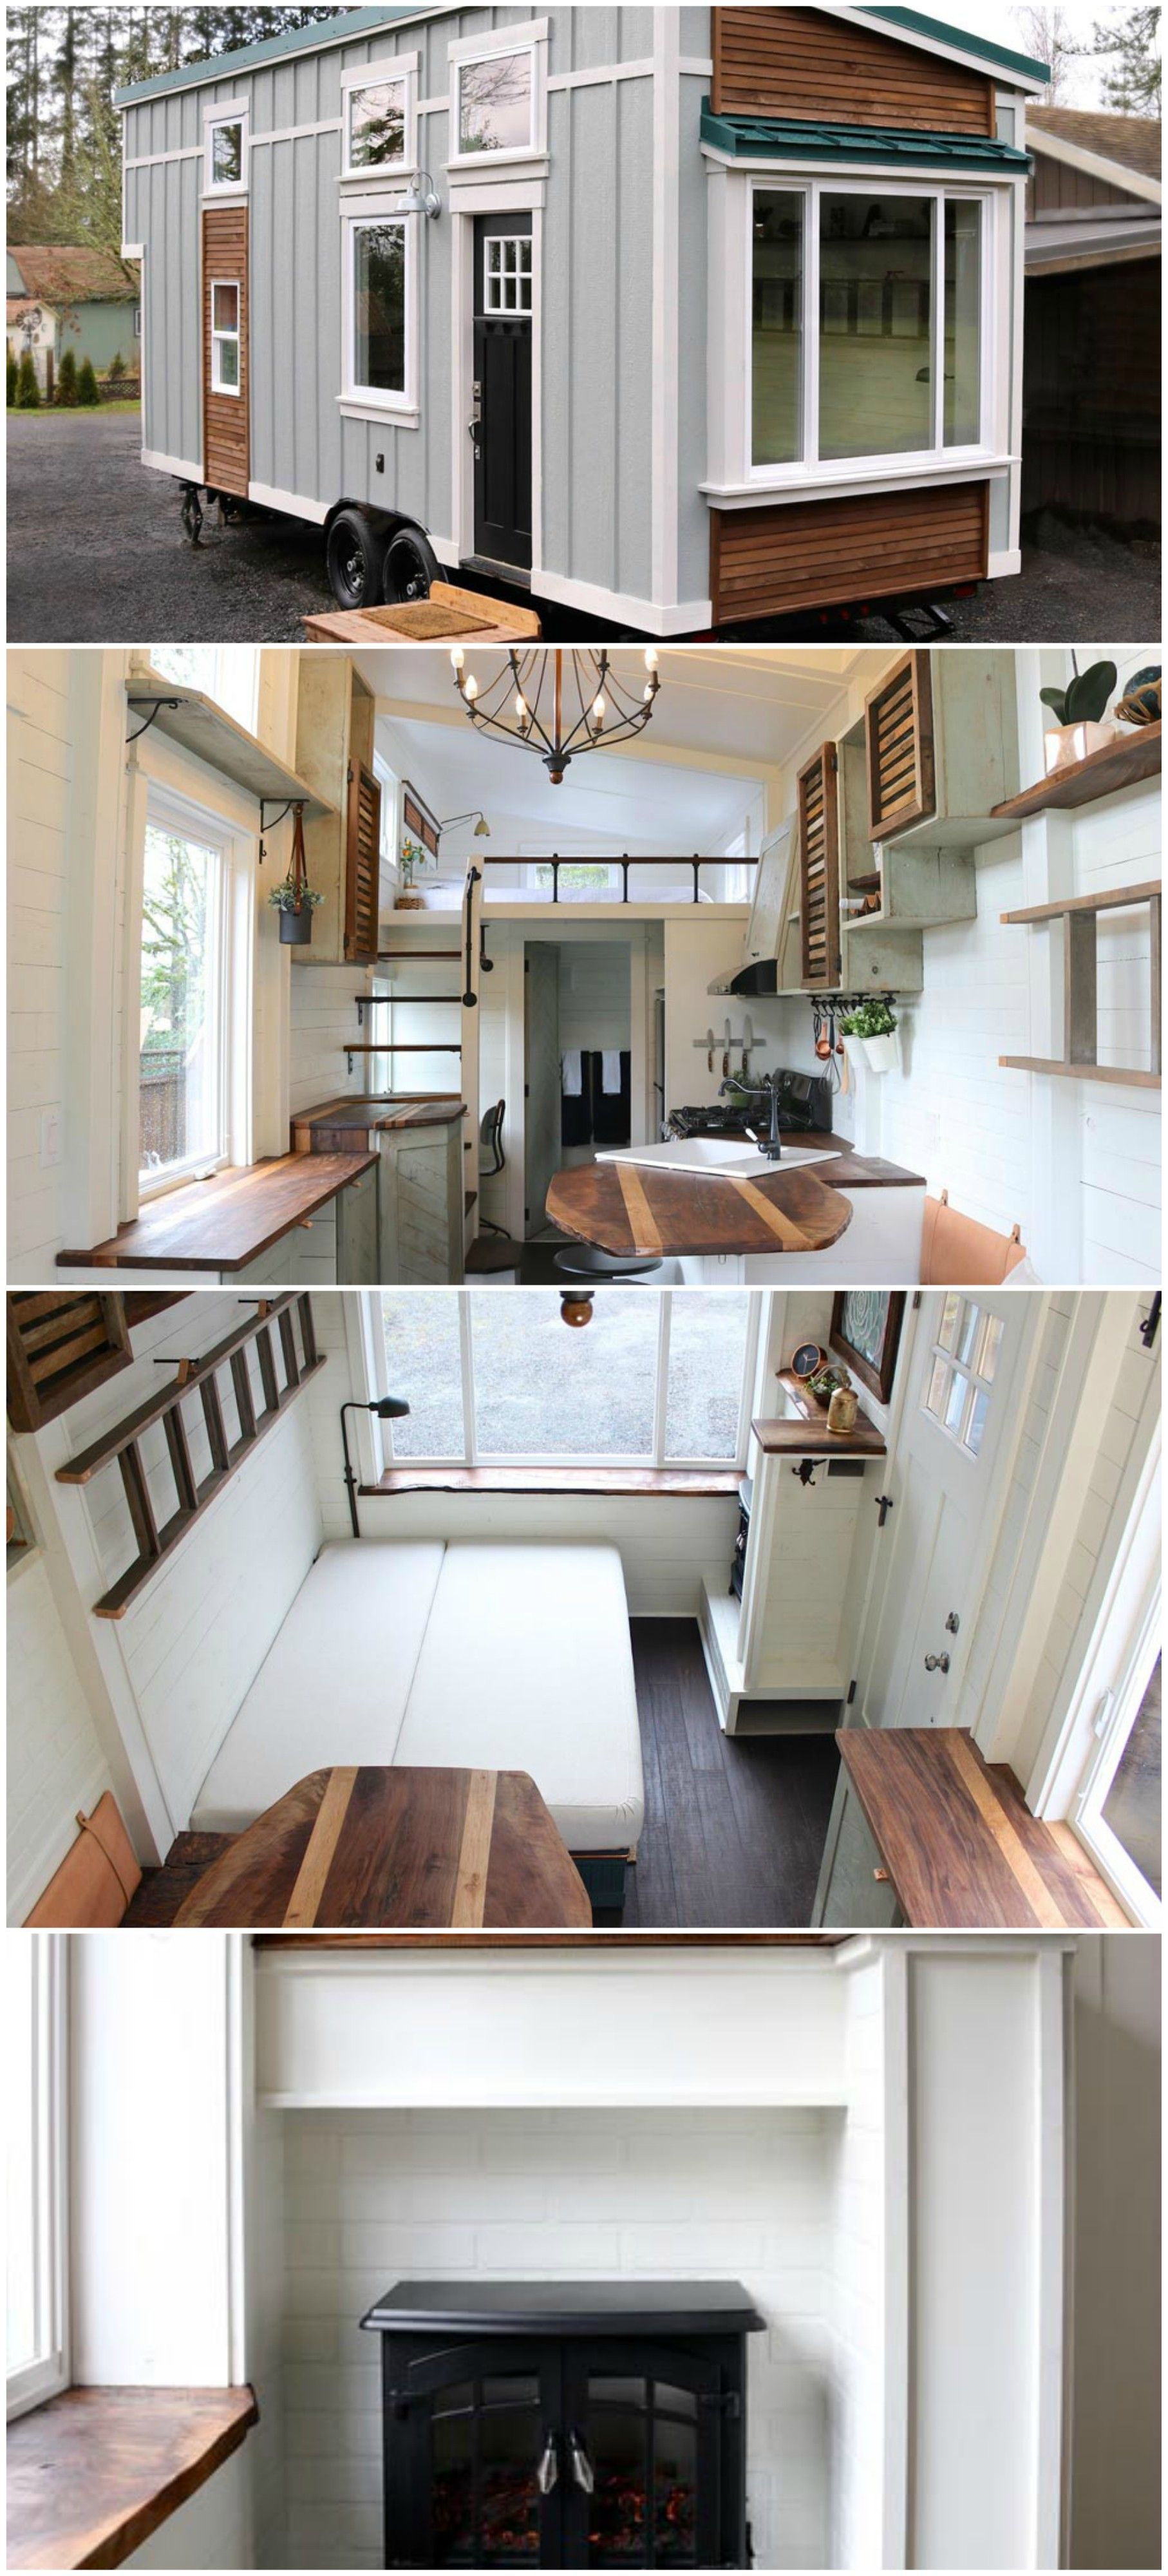 Tiny Home Designs: Tiny Getaway Is An Awesome Tiny House Designed By